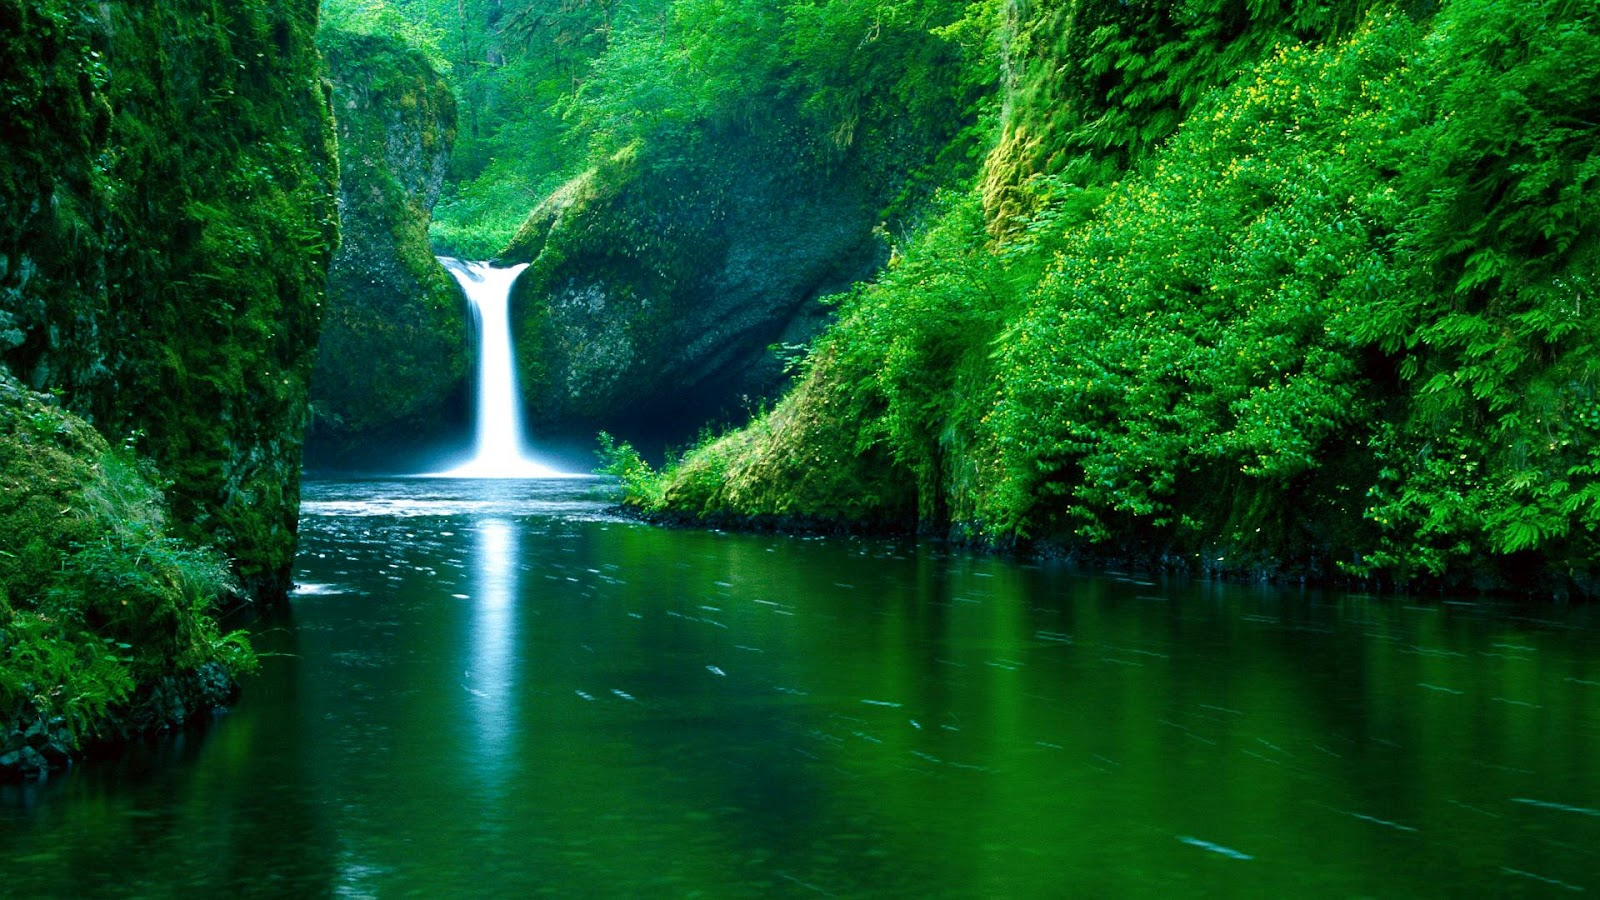 Animated Waterfall Wallpapers For Mobile Latest Most Beautiful Hd Widescreen Natural Scene